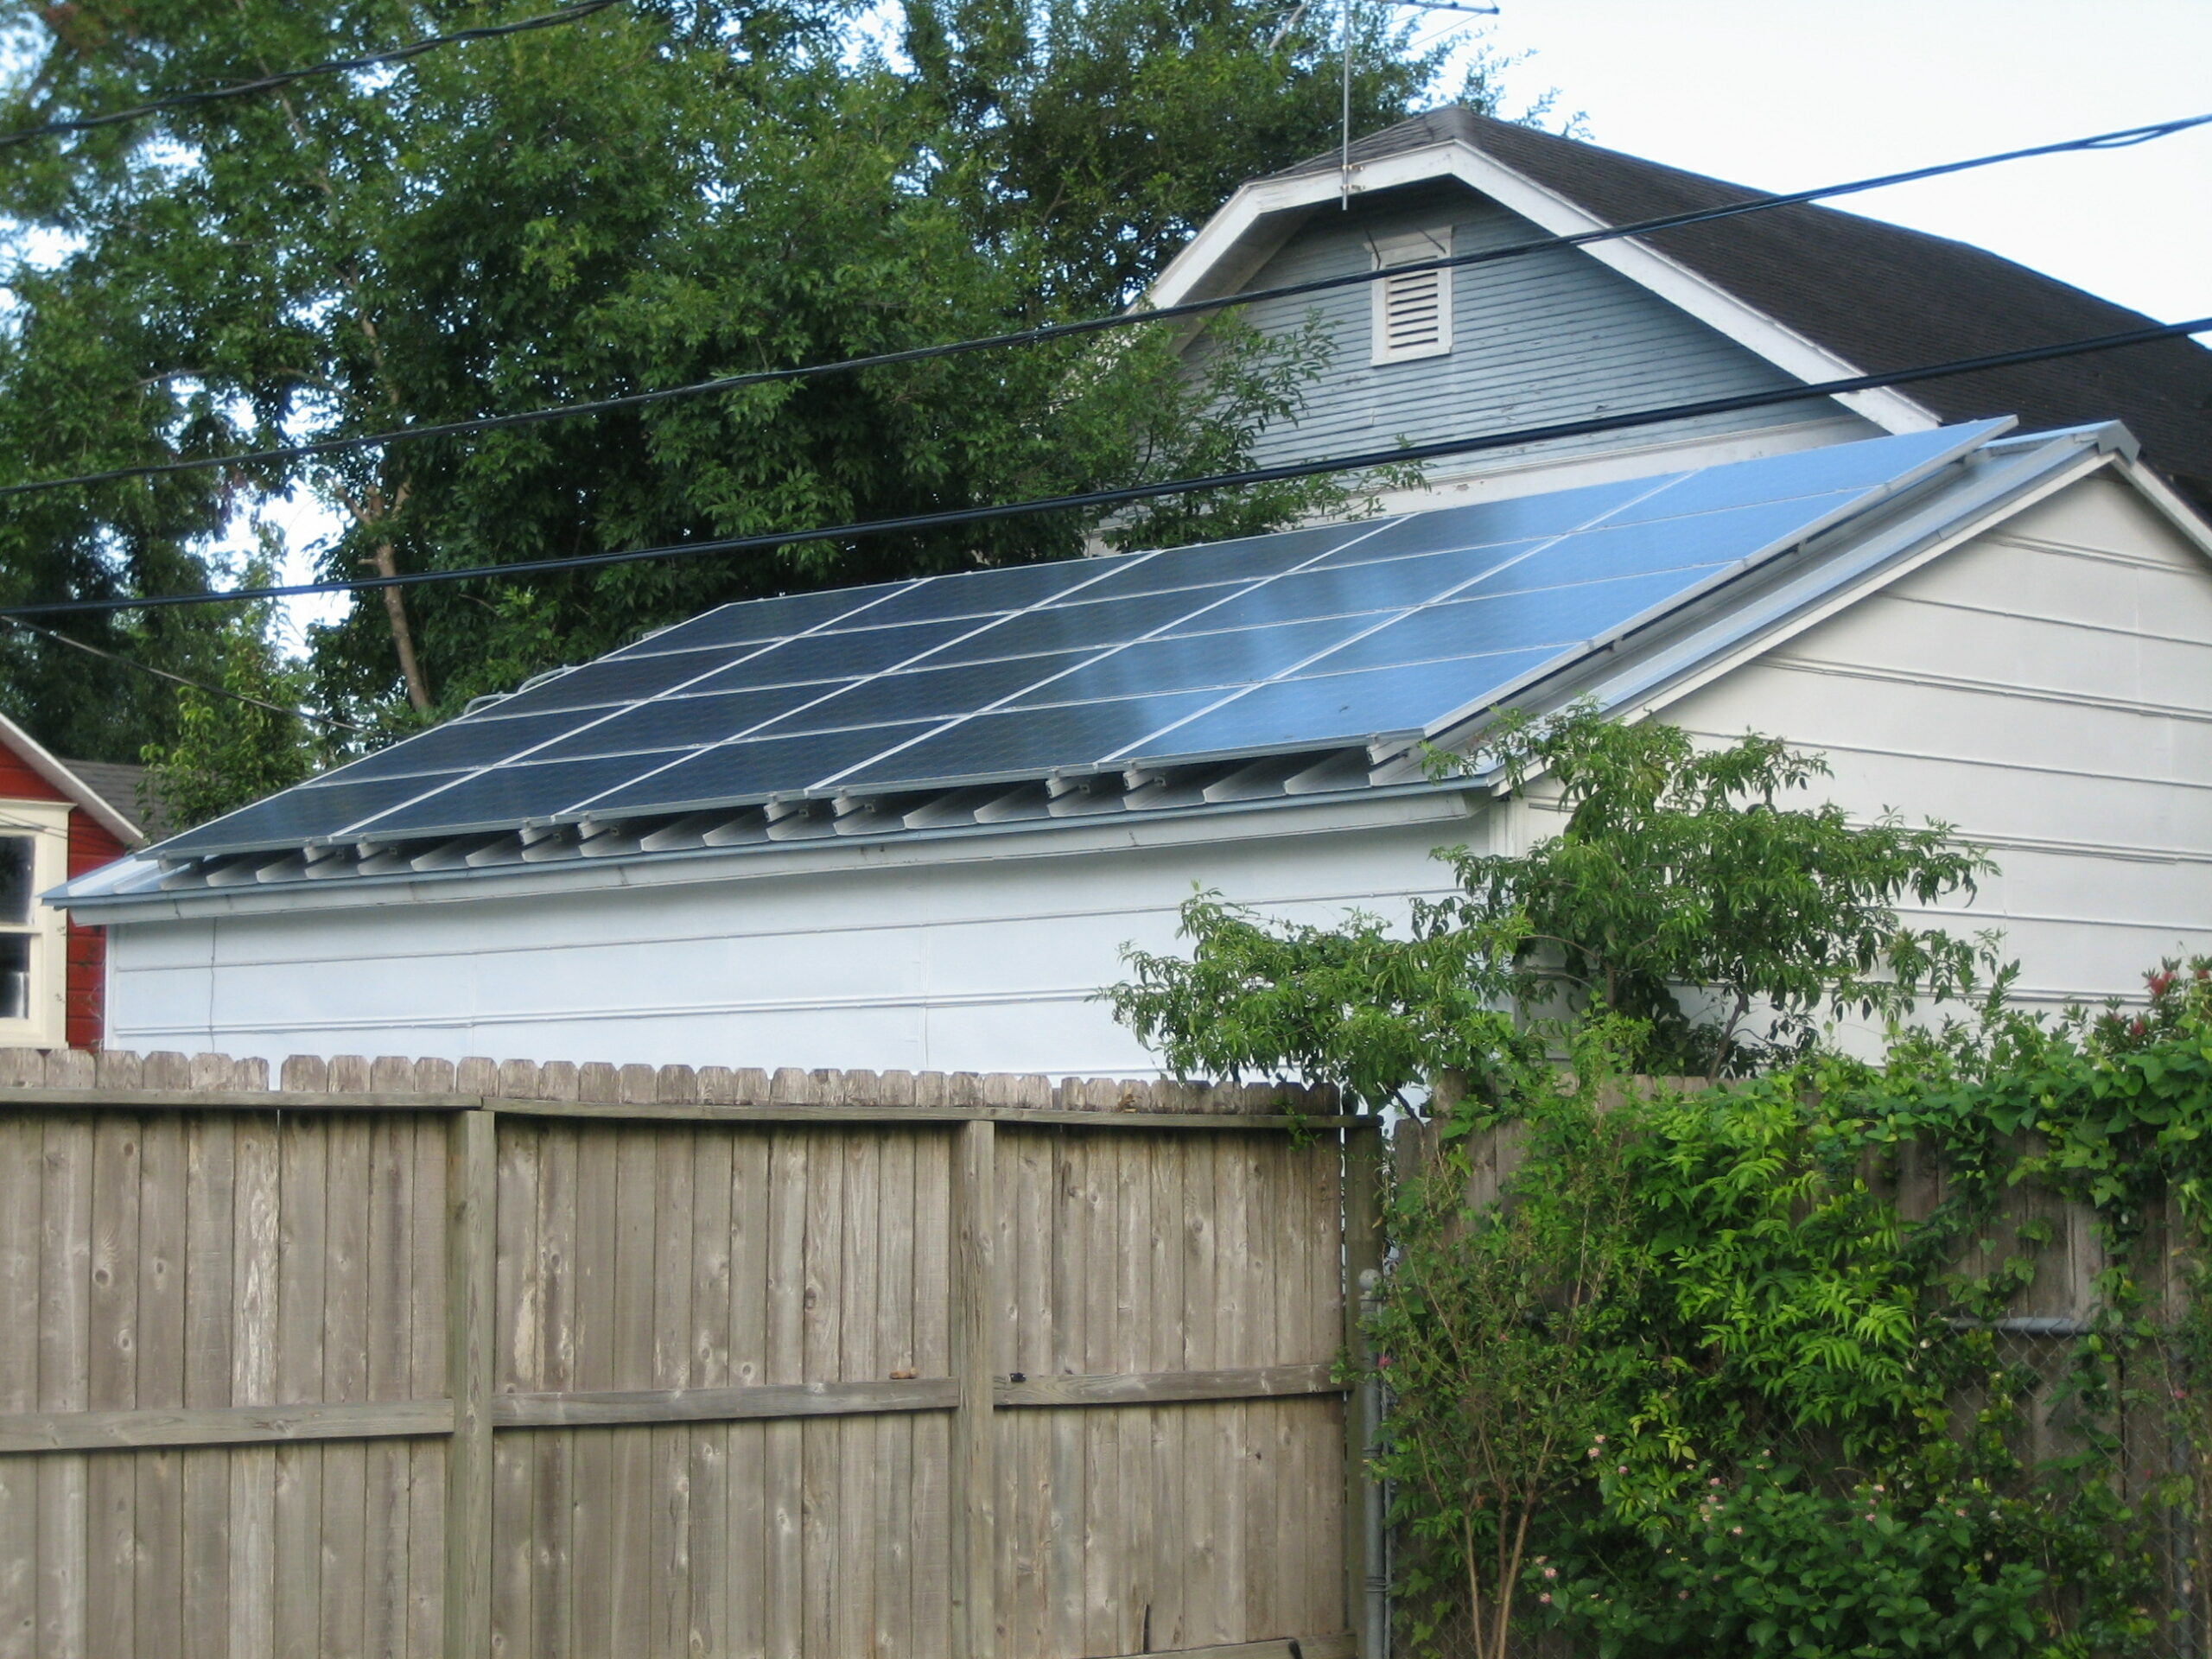 Solar panels installed on the roof in a residential area